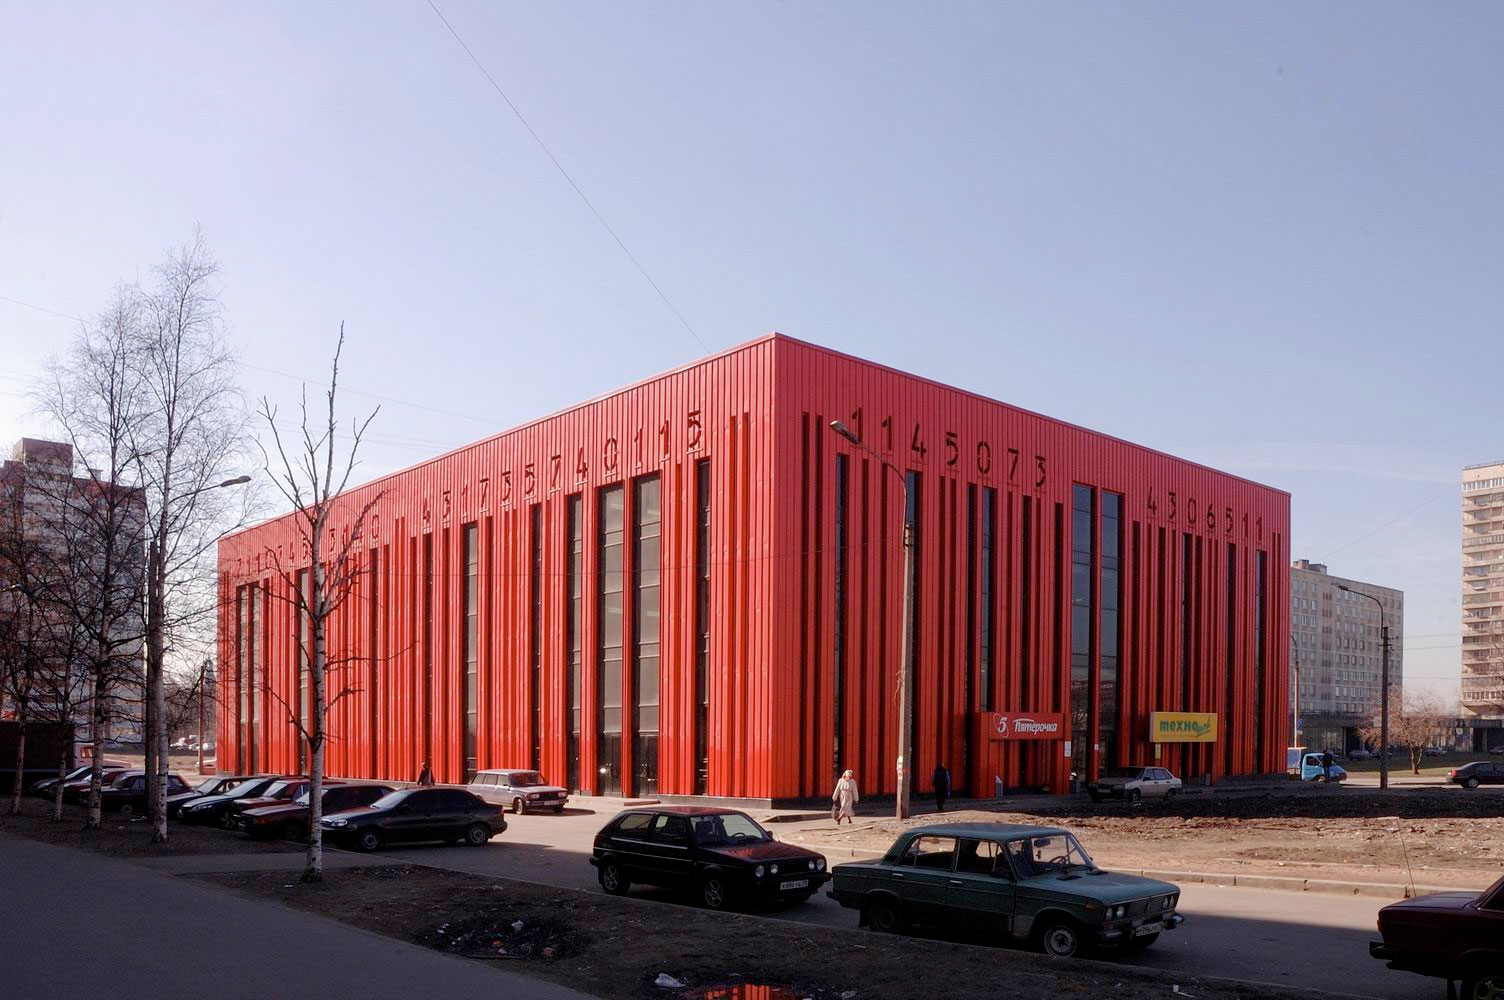 Barcode Building